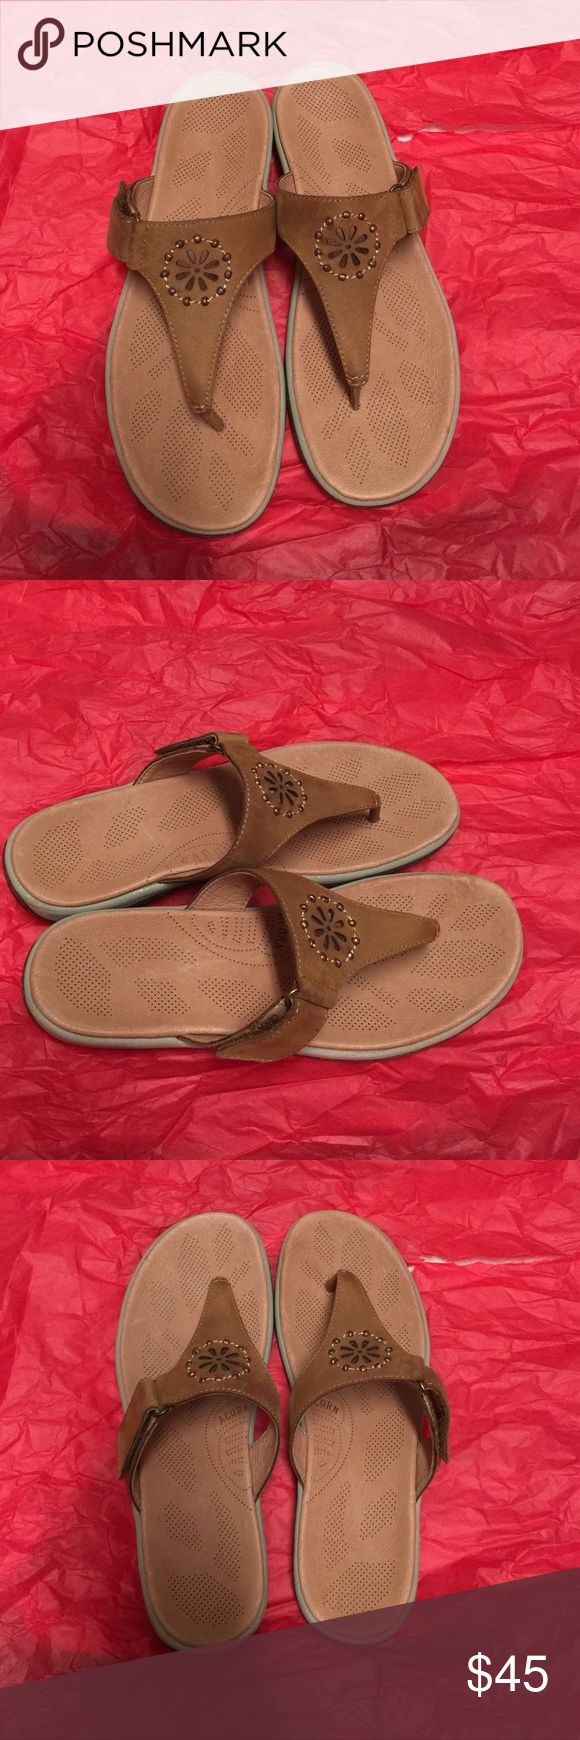 Brand new ACORN shoes Women slip on sandals/ all leather upper size 7 w / adjustable Acorn Shoes Sandals